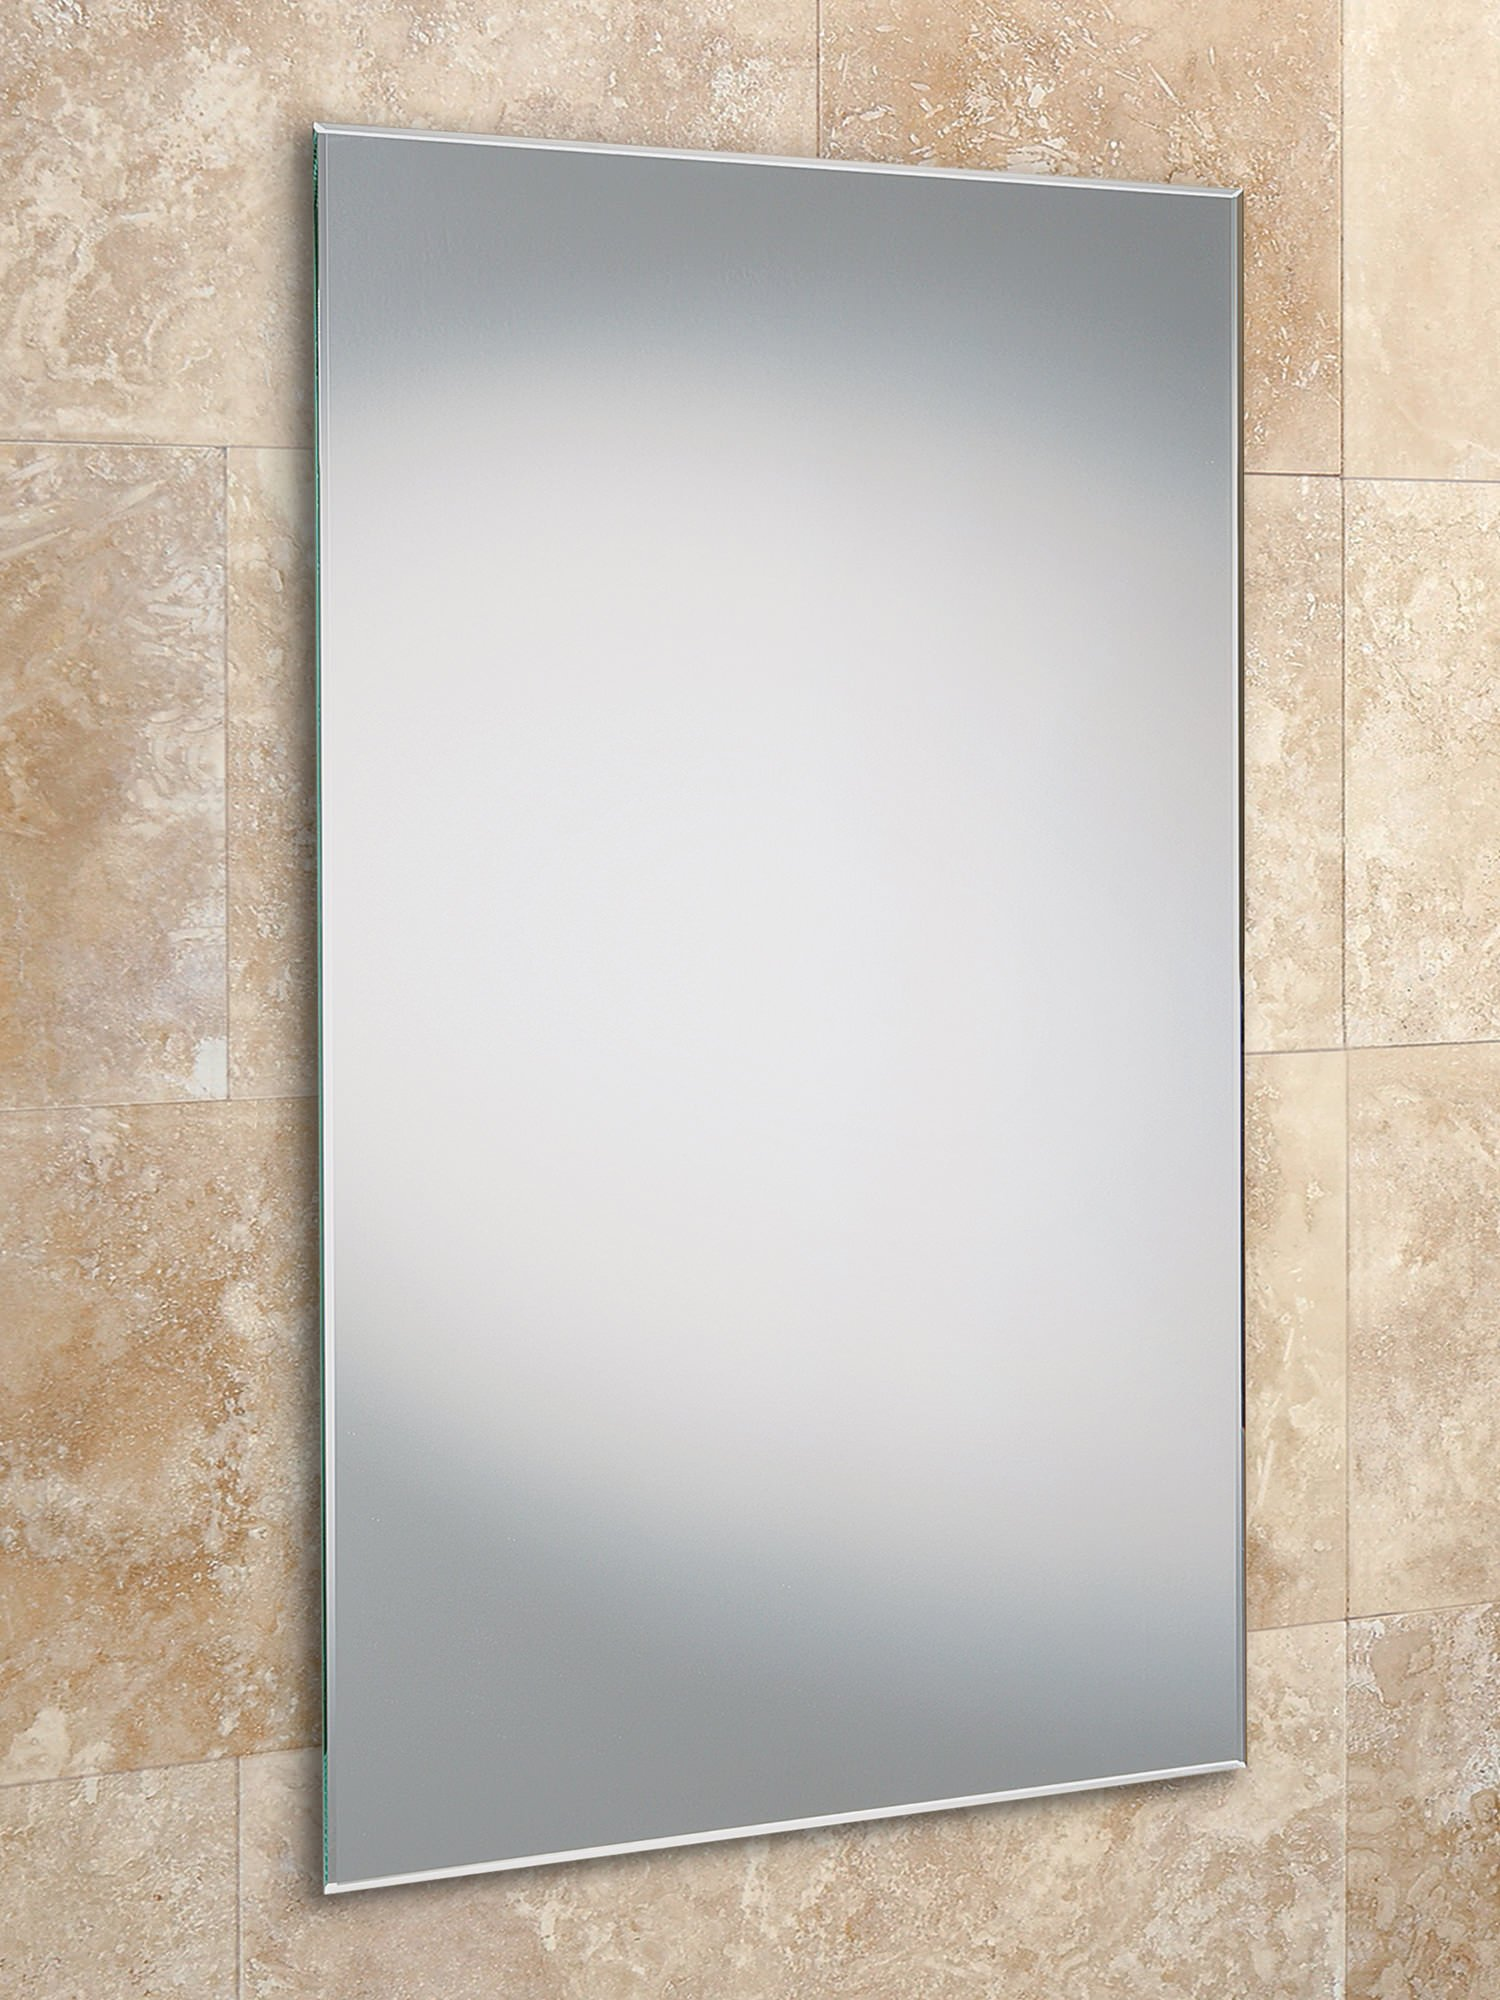 Hib Fili Bevelled Edge Slimline Rectangular Mirror 400 X 800mm